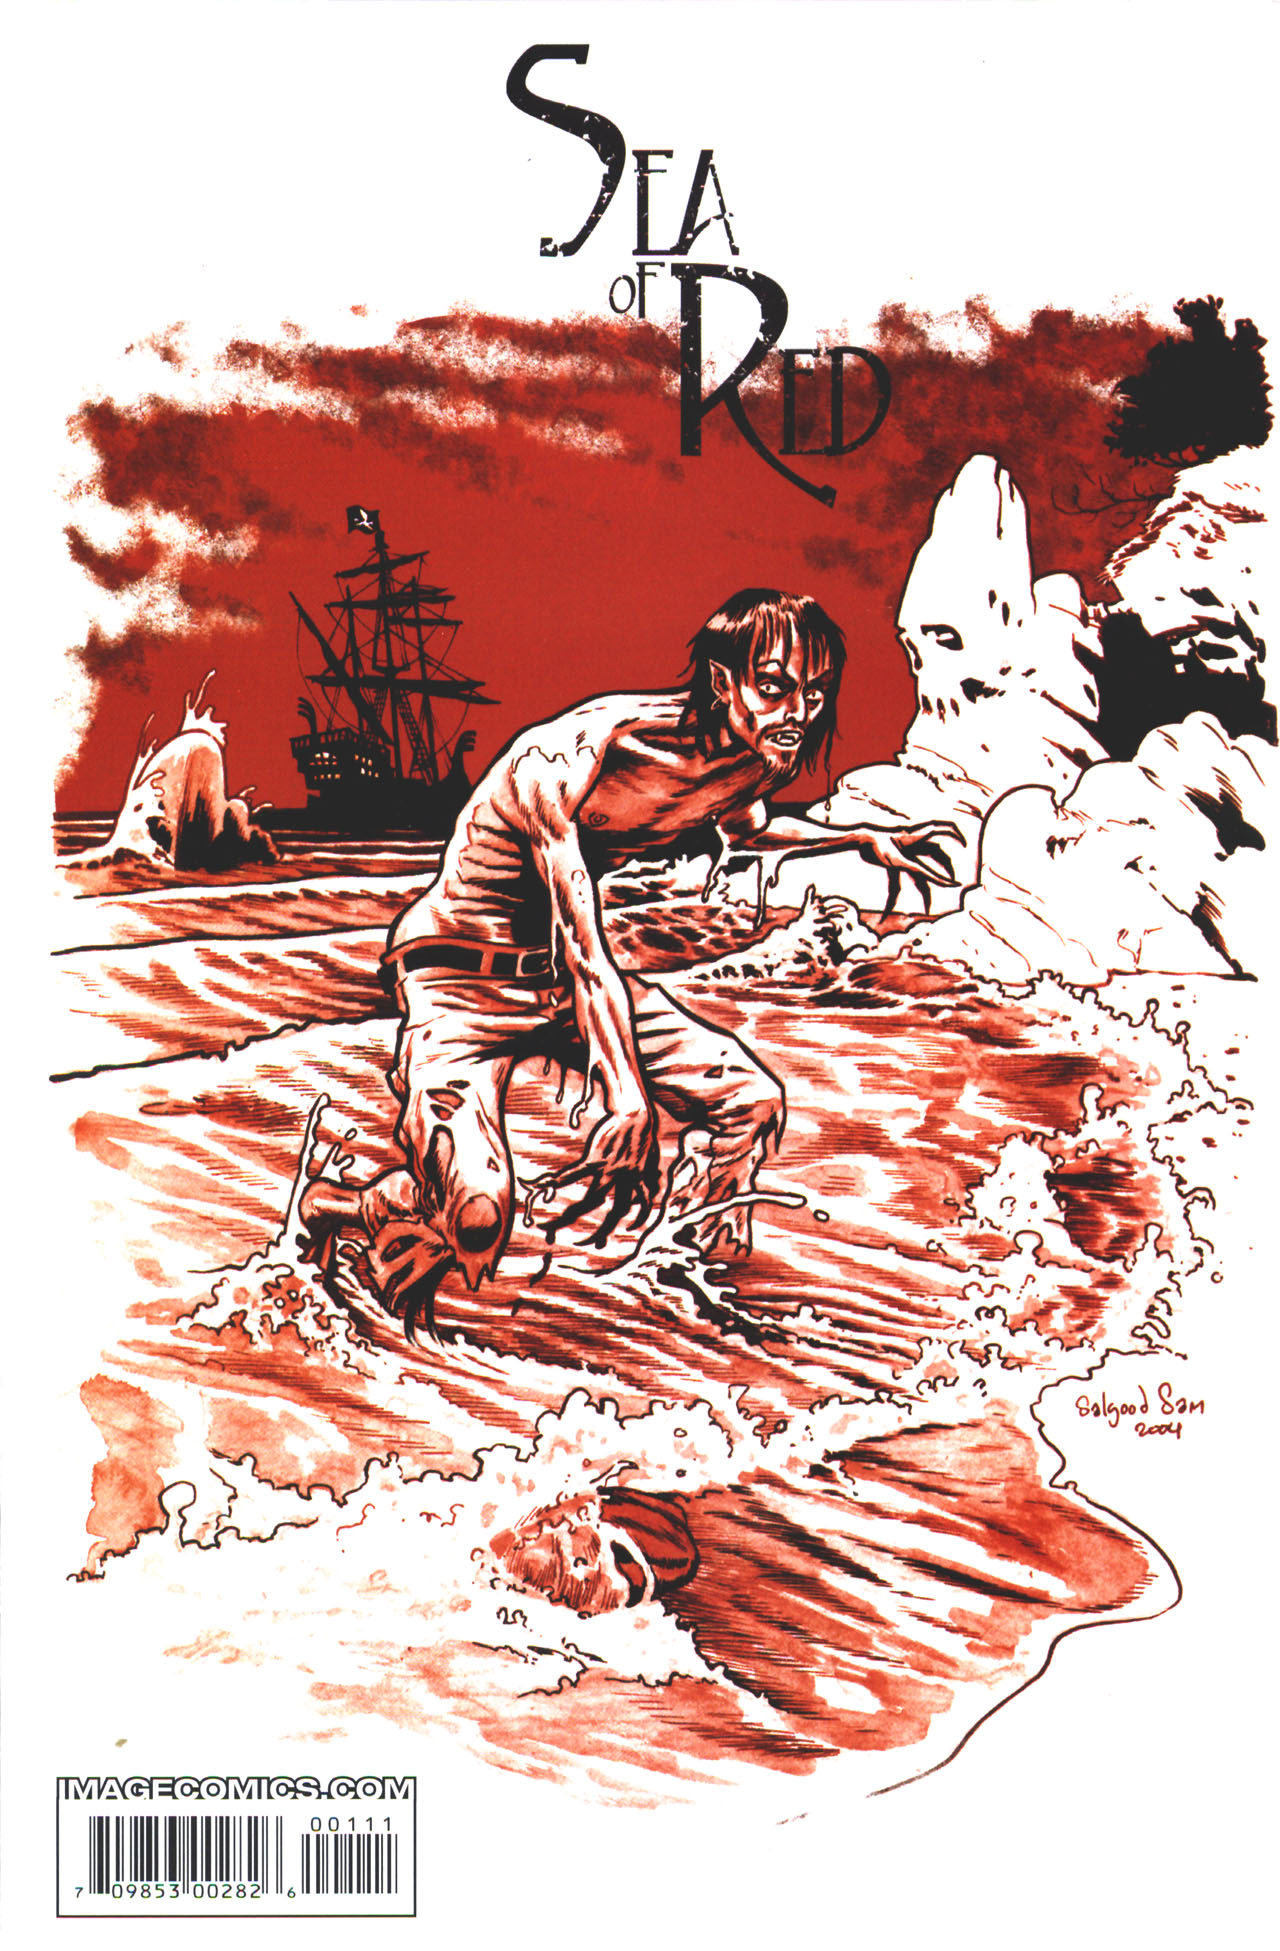 Read online Sea of Red comic -  Issue #1 - 35